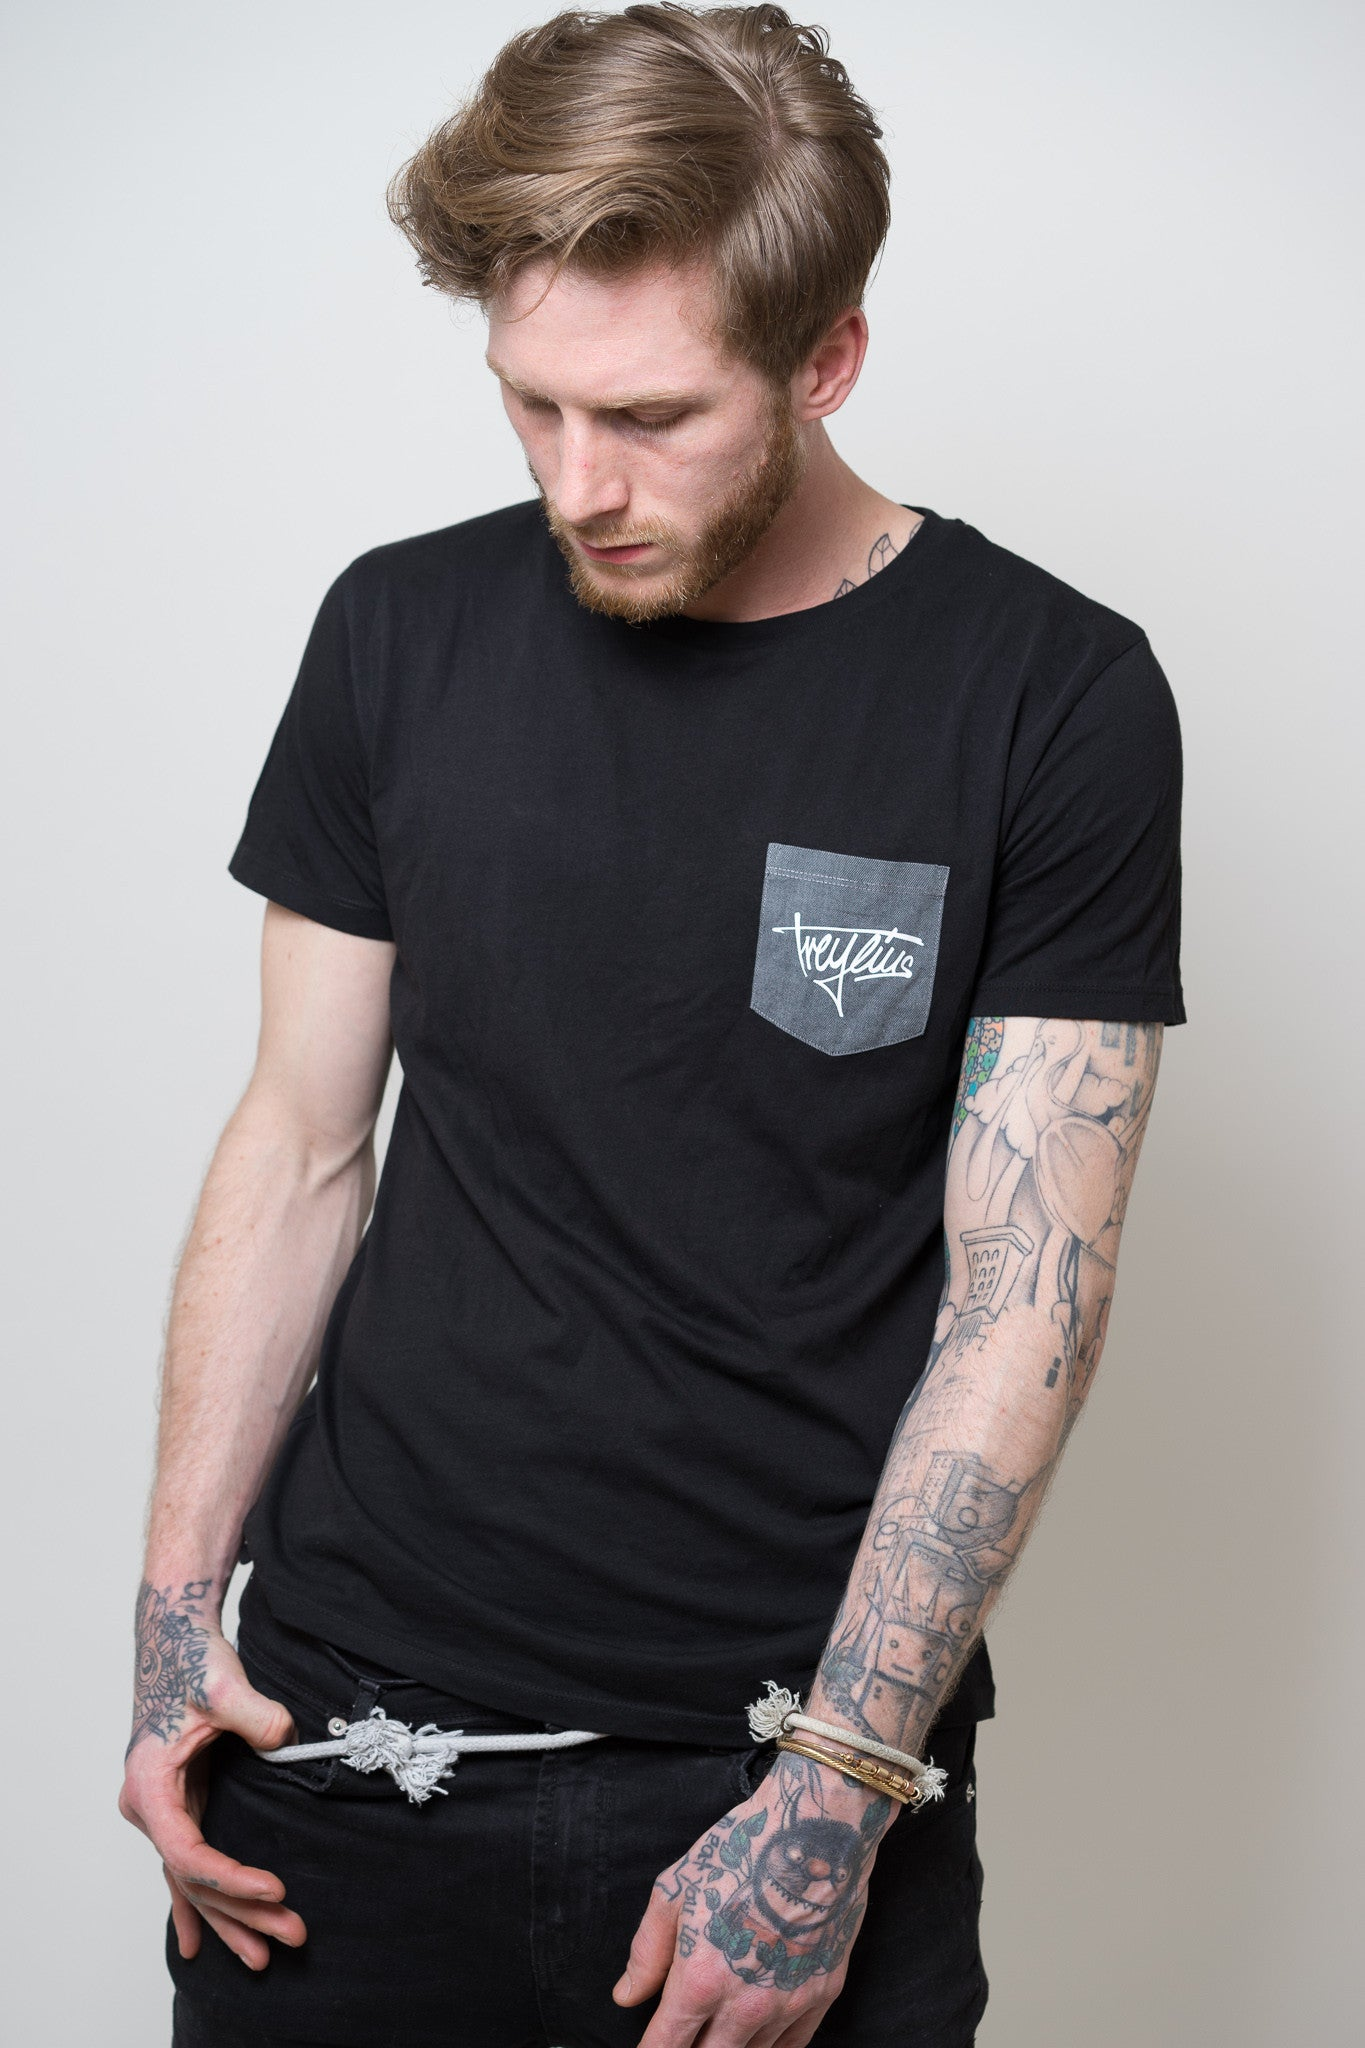 Pocketshirt black / grey